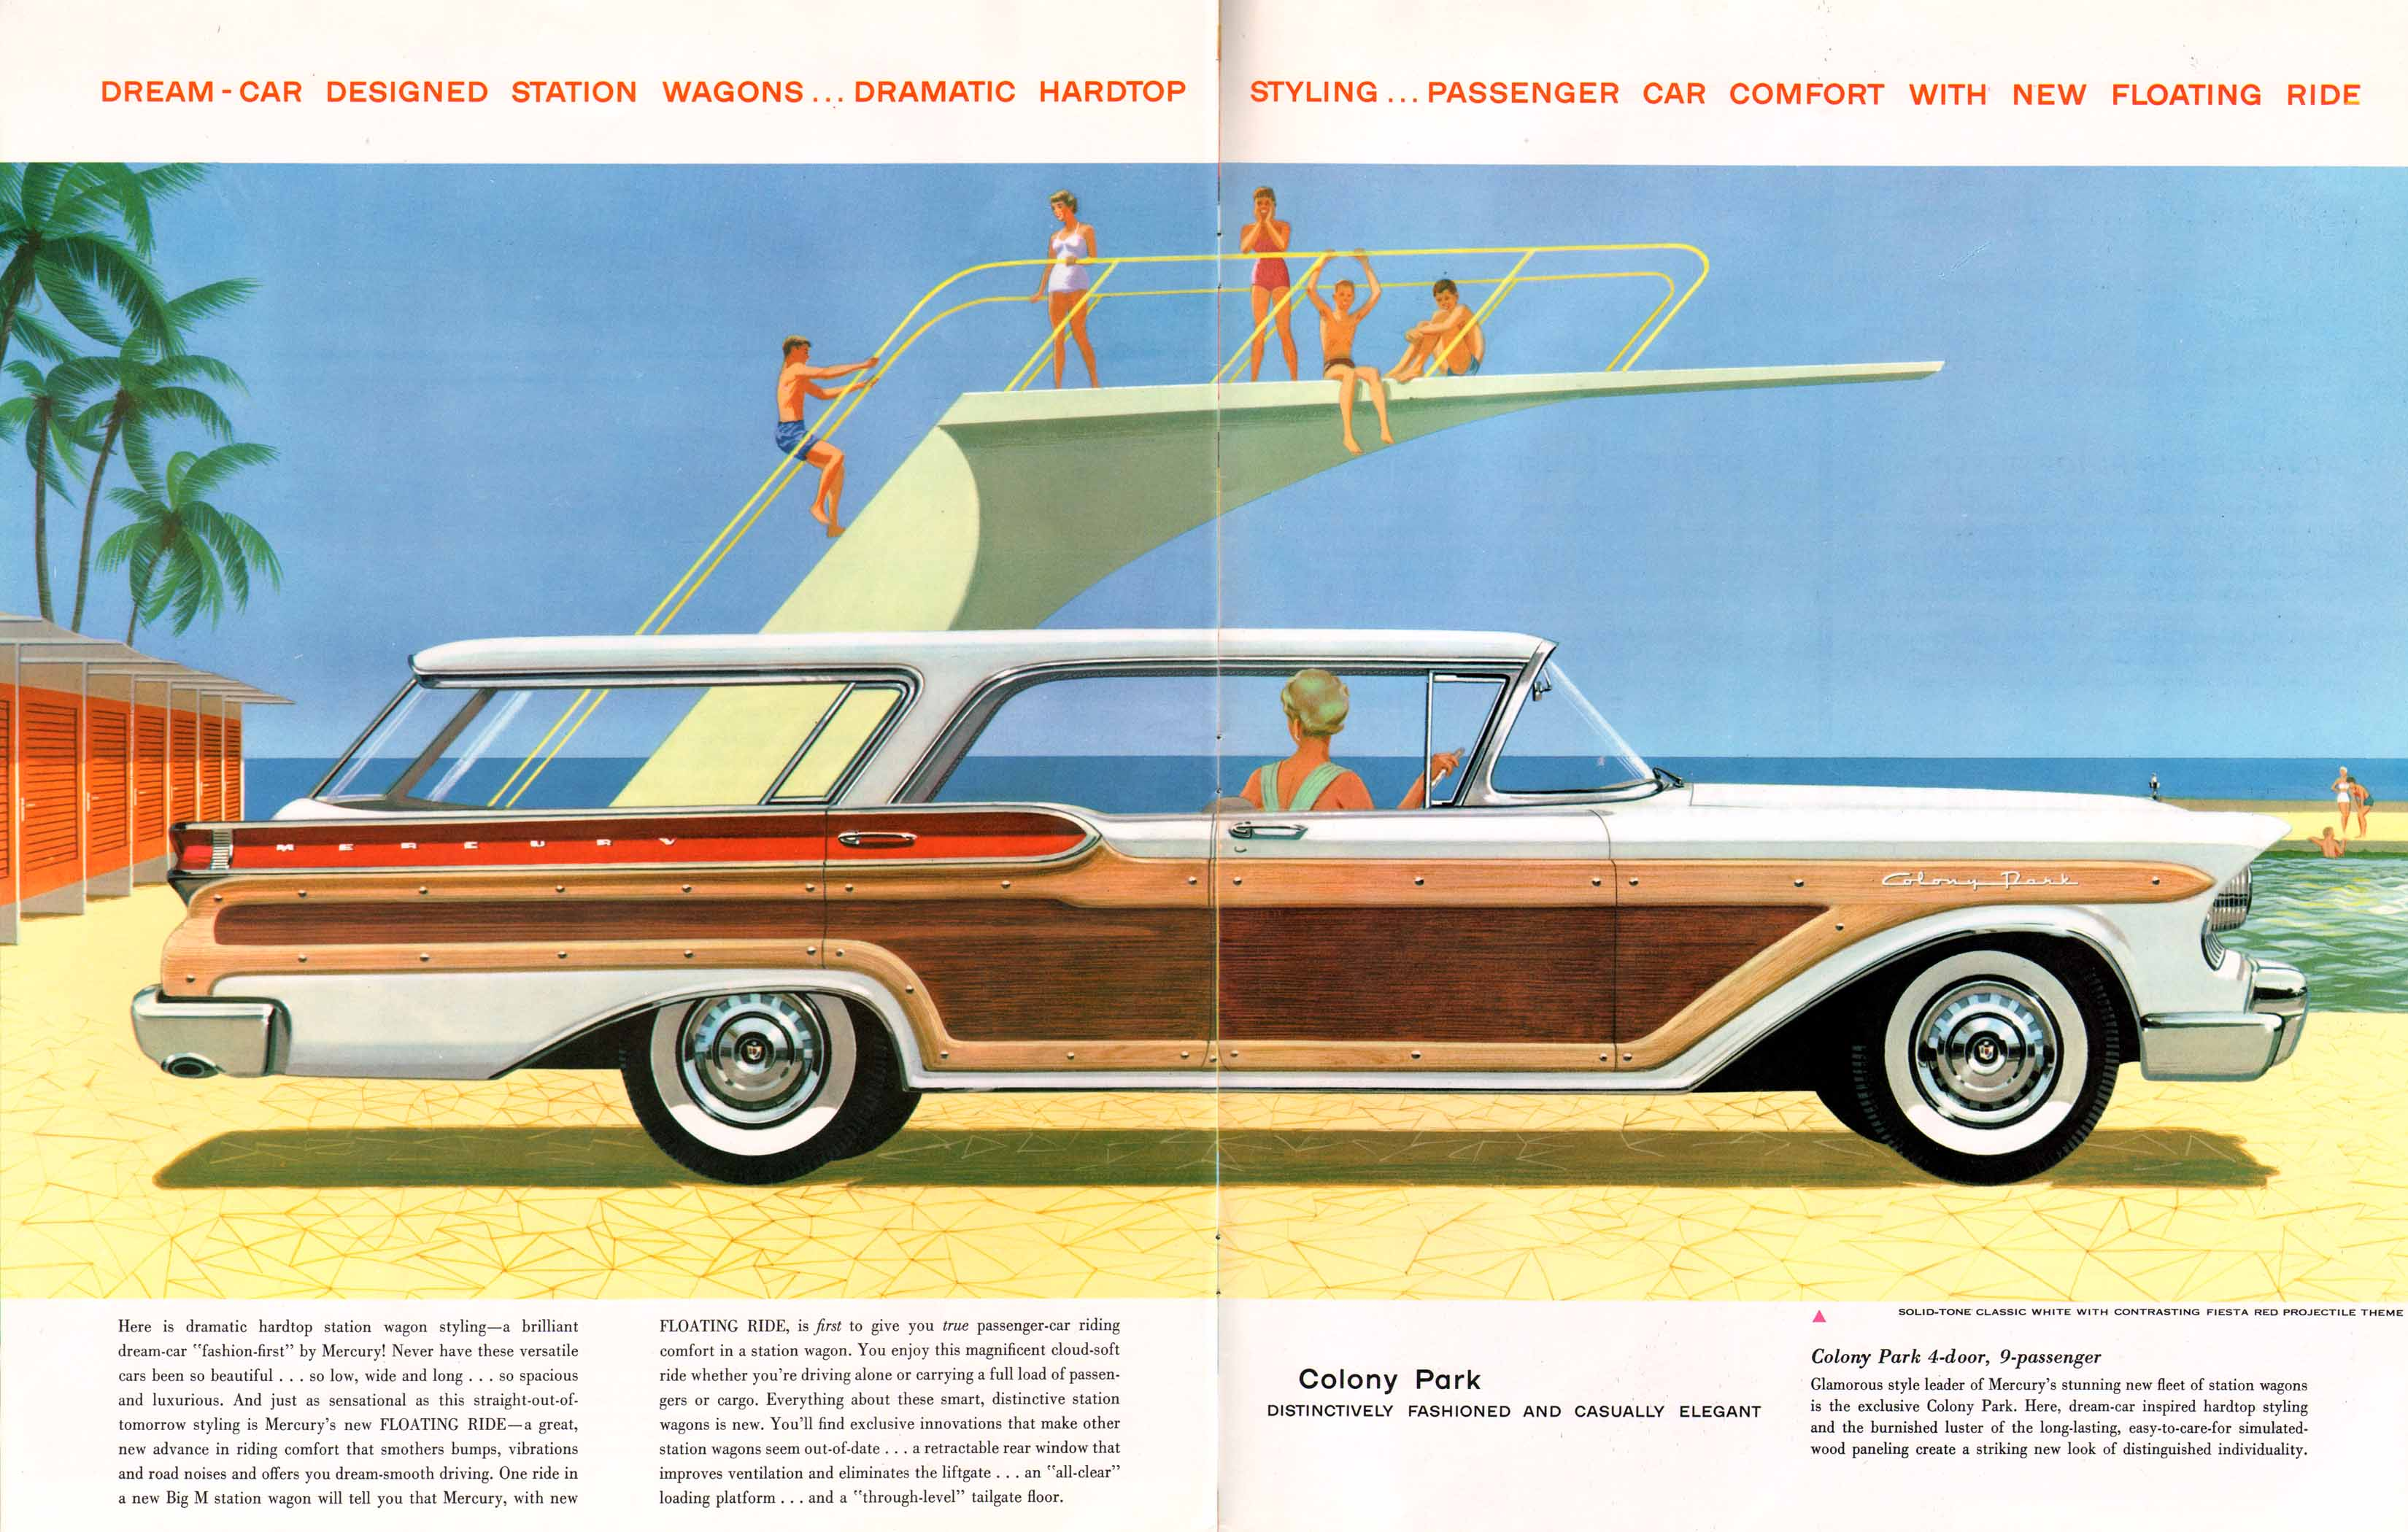 1957 Mercury With Dream Car Design Large Prestige Brochure Chevrolet Sales 20 21